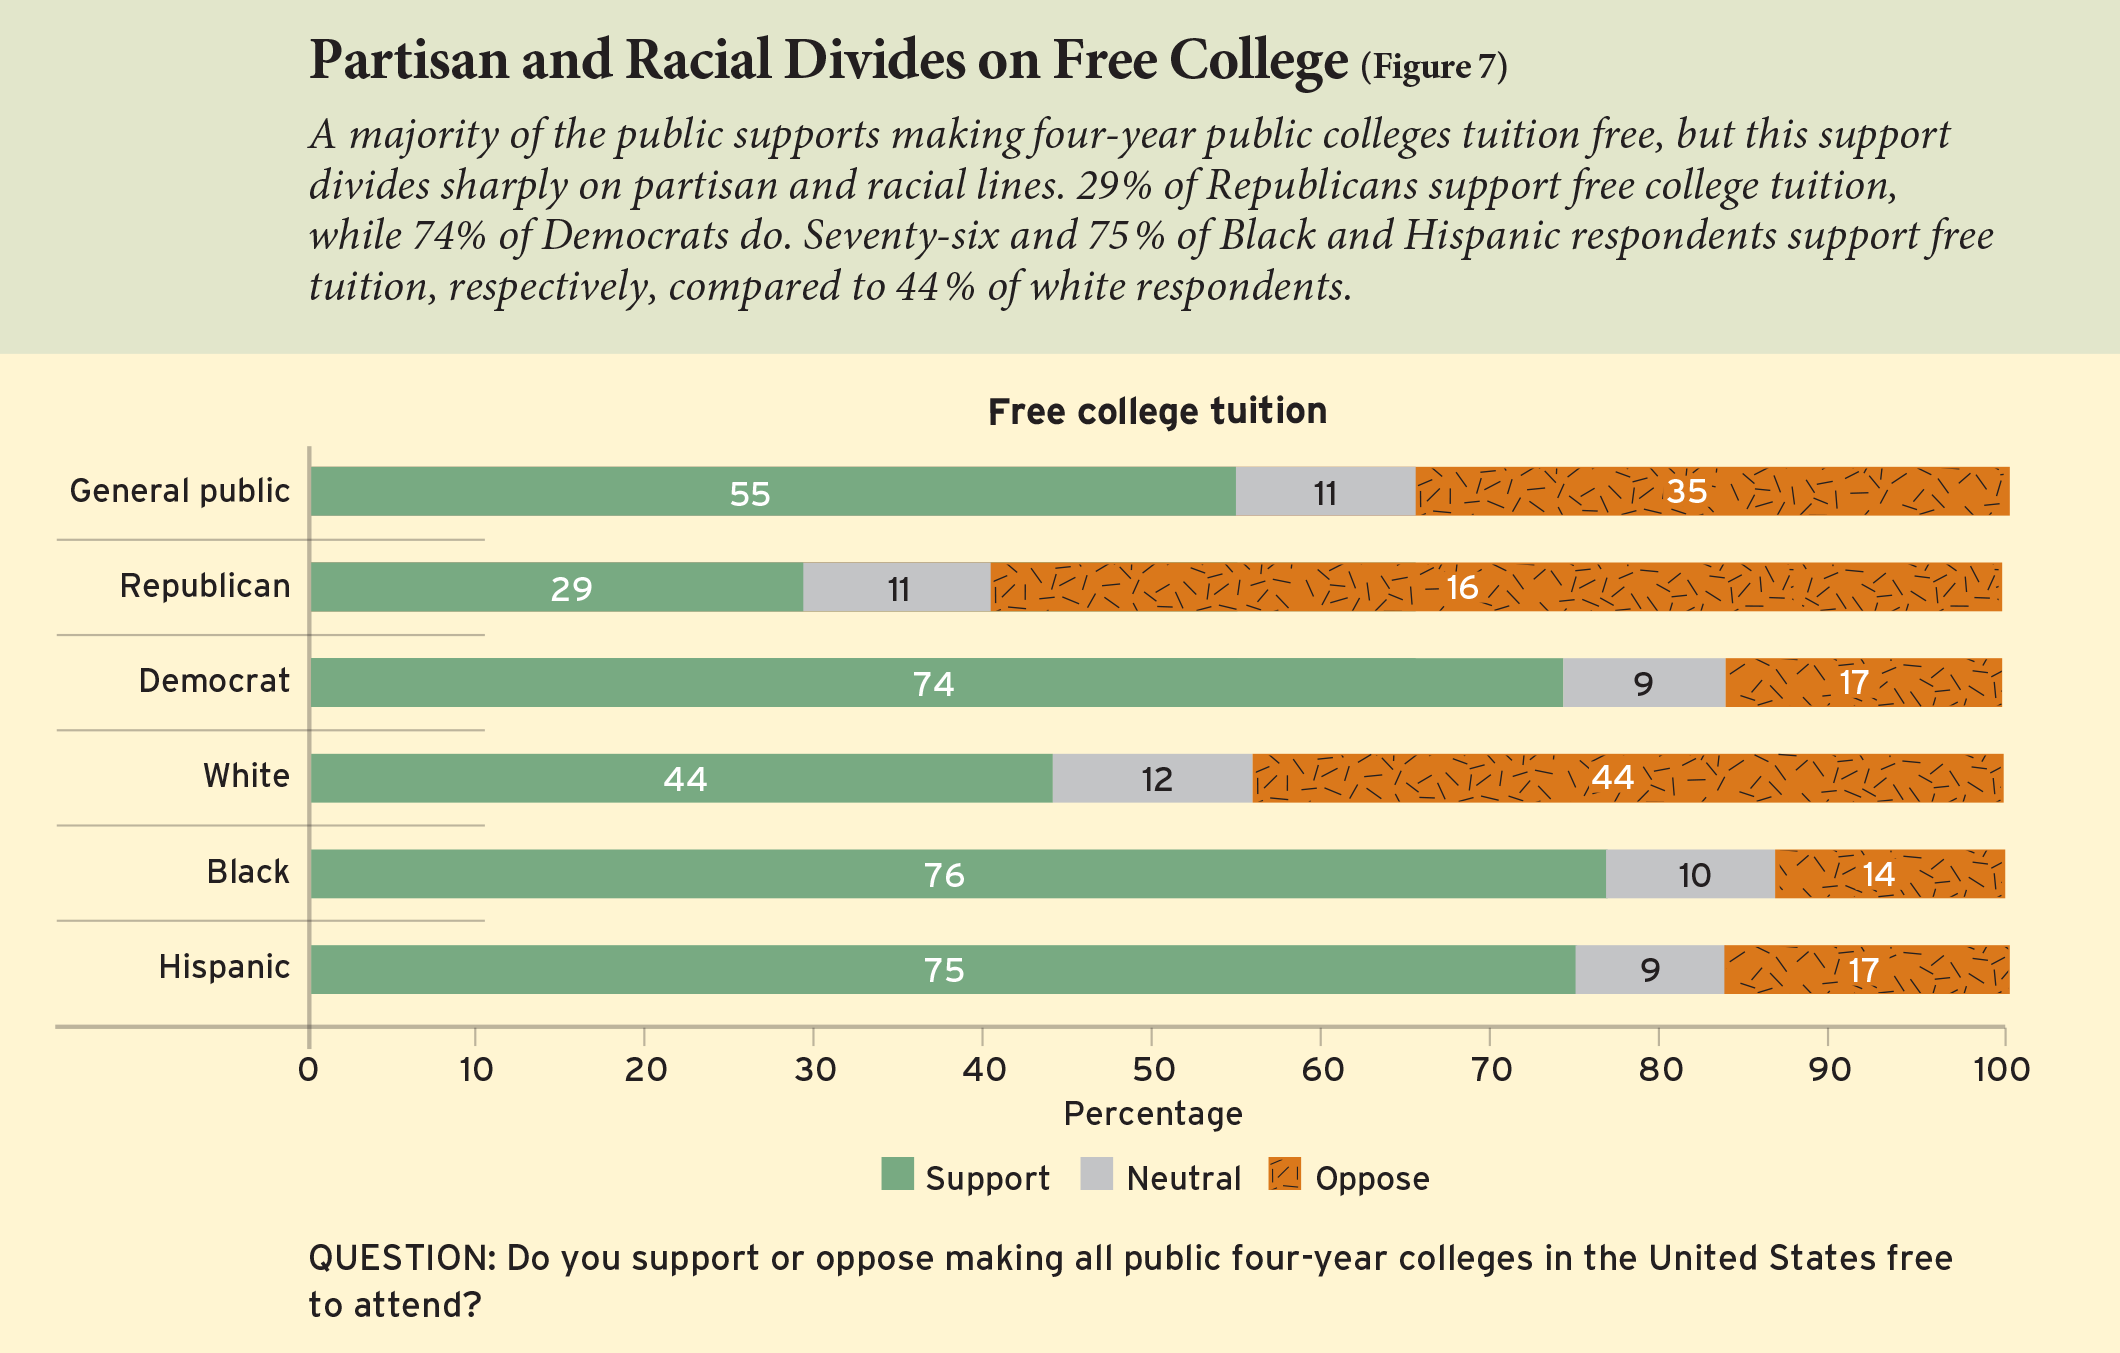 Figure 7: Partisan and Racial Divides on Free College